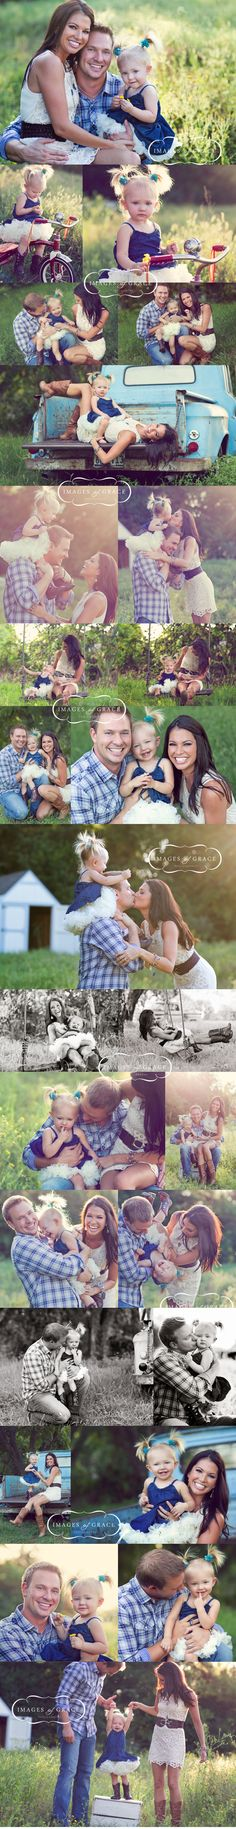 Adorable family photos @Katie Davis Roberts